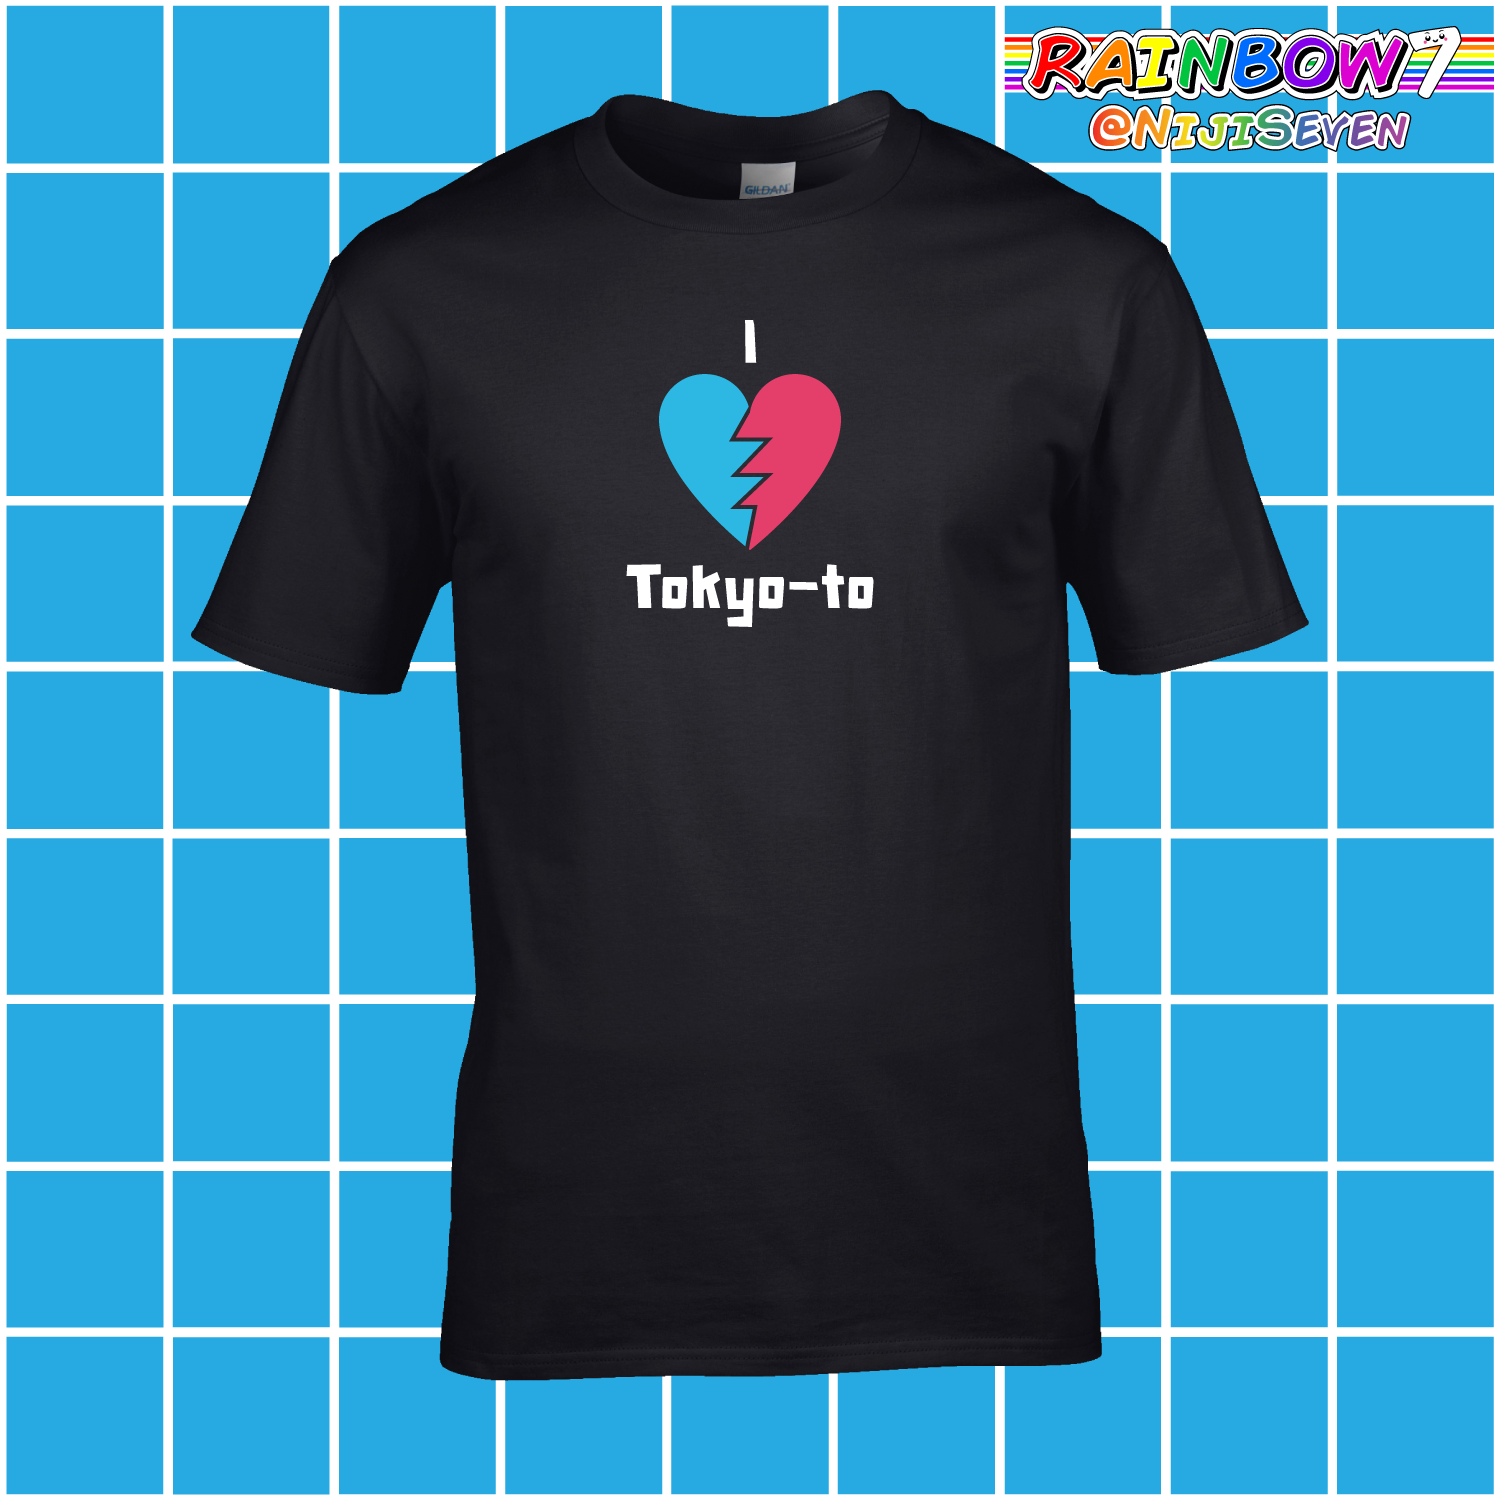 ADULT - PREMIUM - I Heart Tokyo-to Inspired by Jet Set Radio - Videogame T Shirt